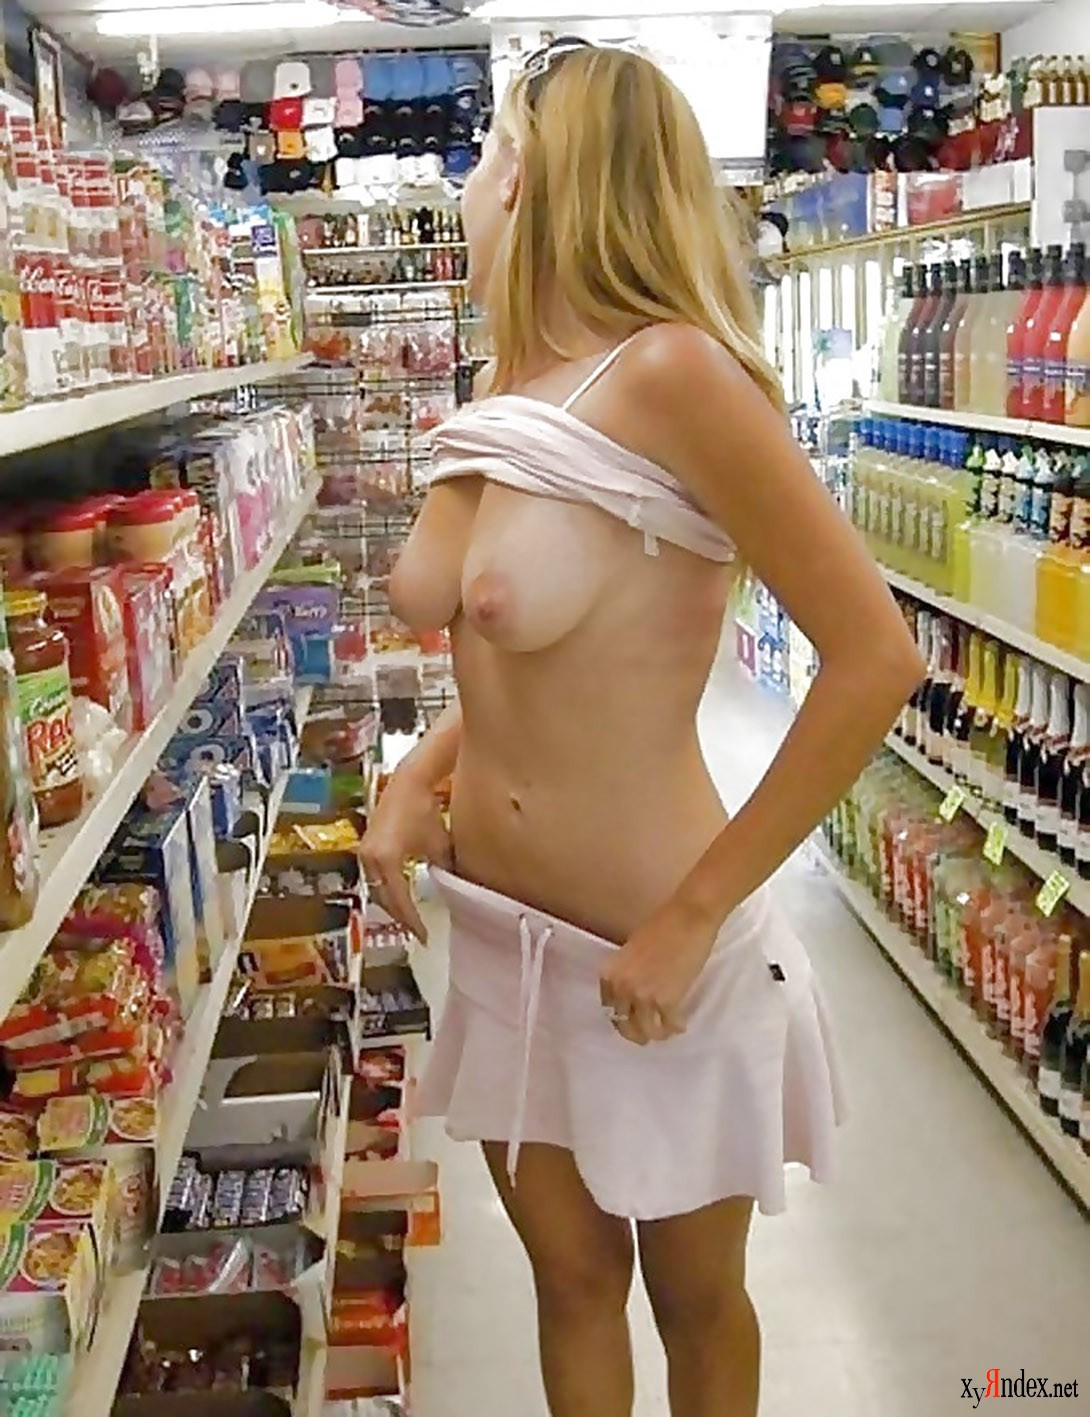 Slutty Walmart Girls